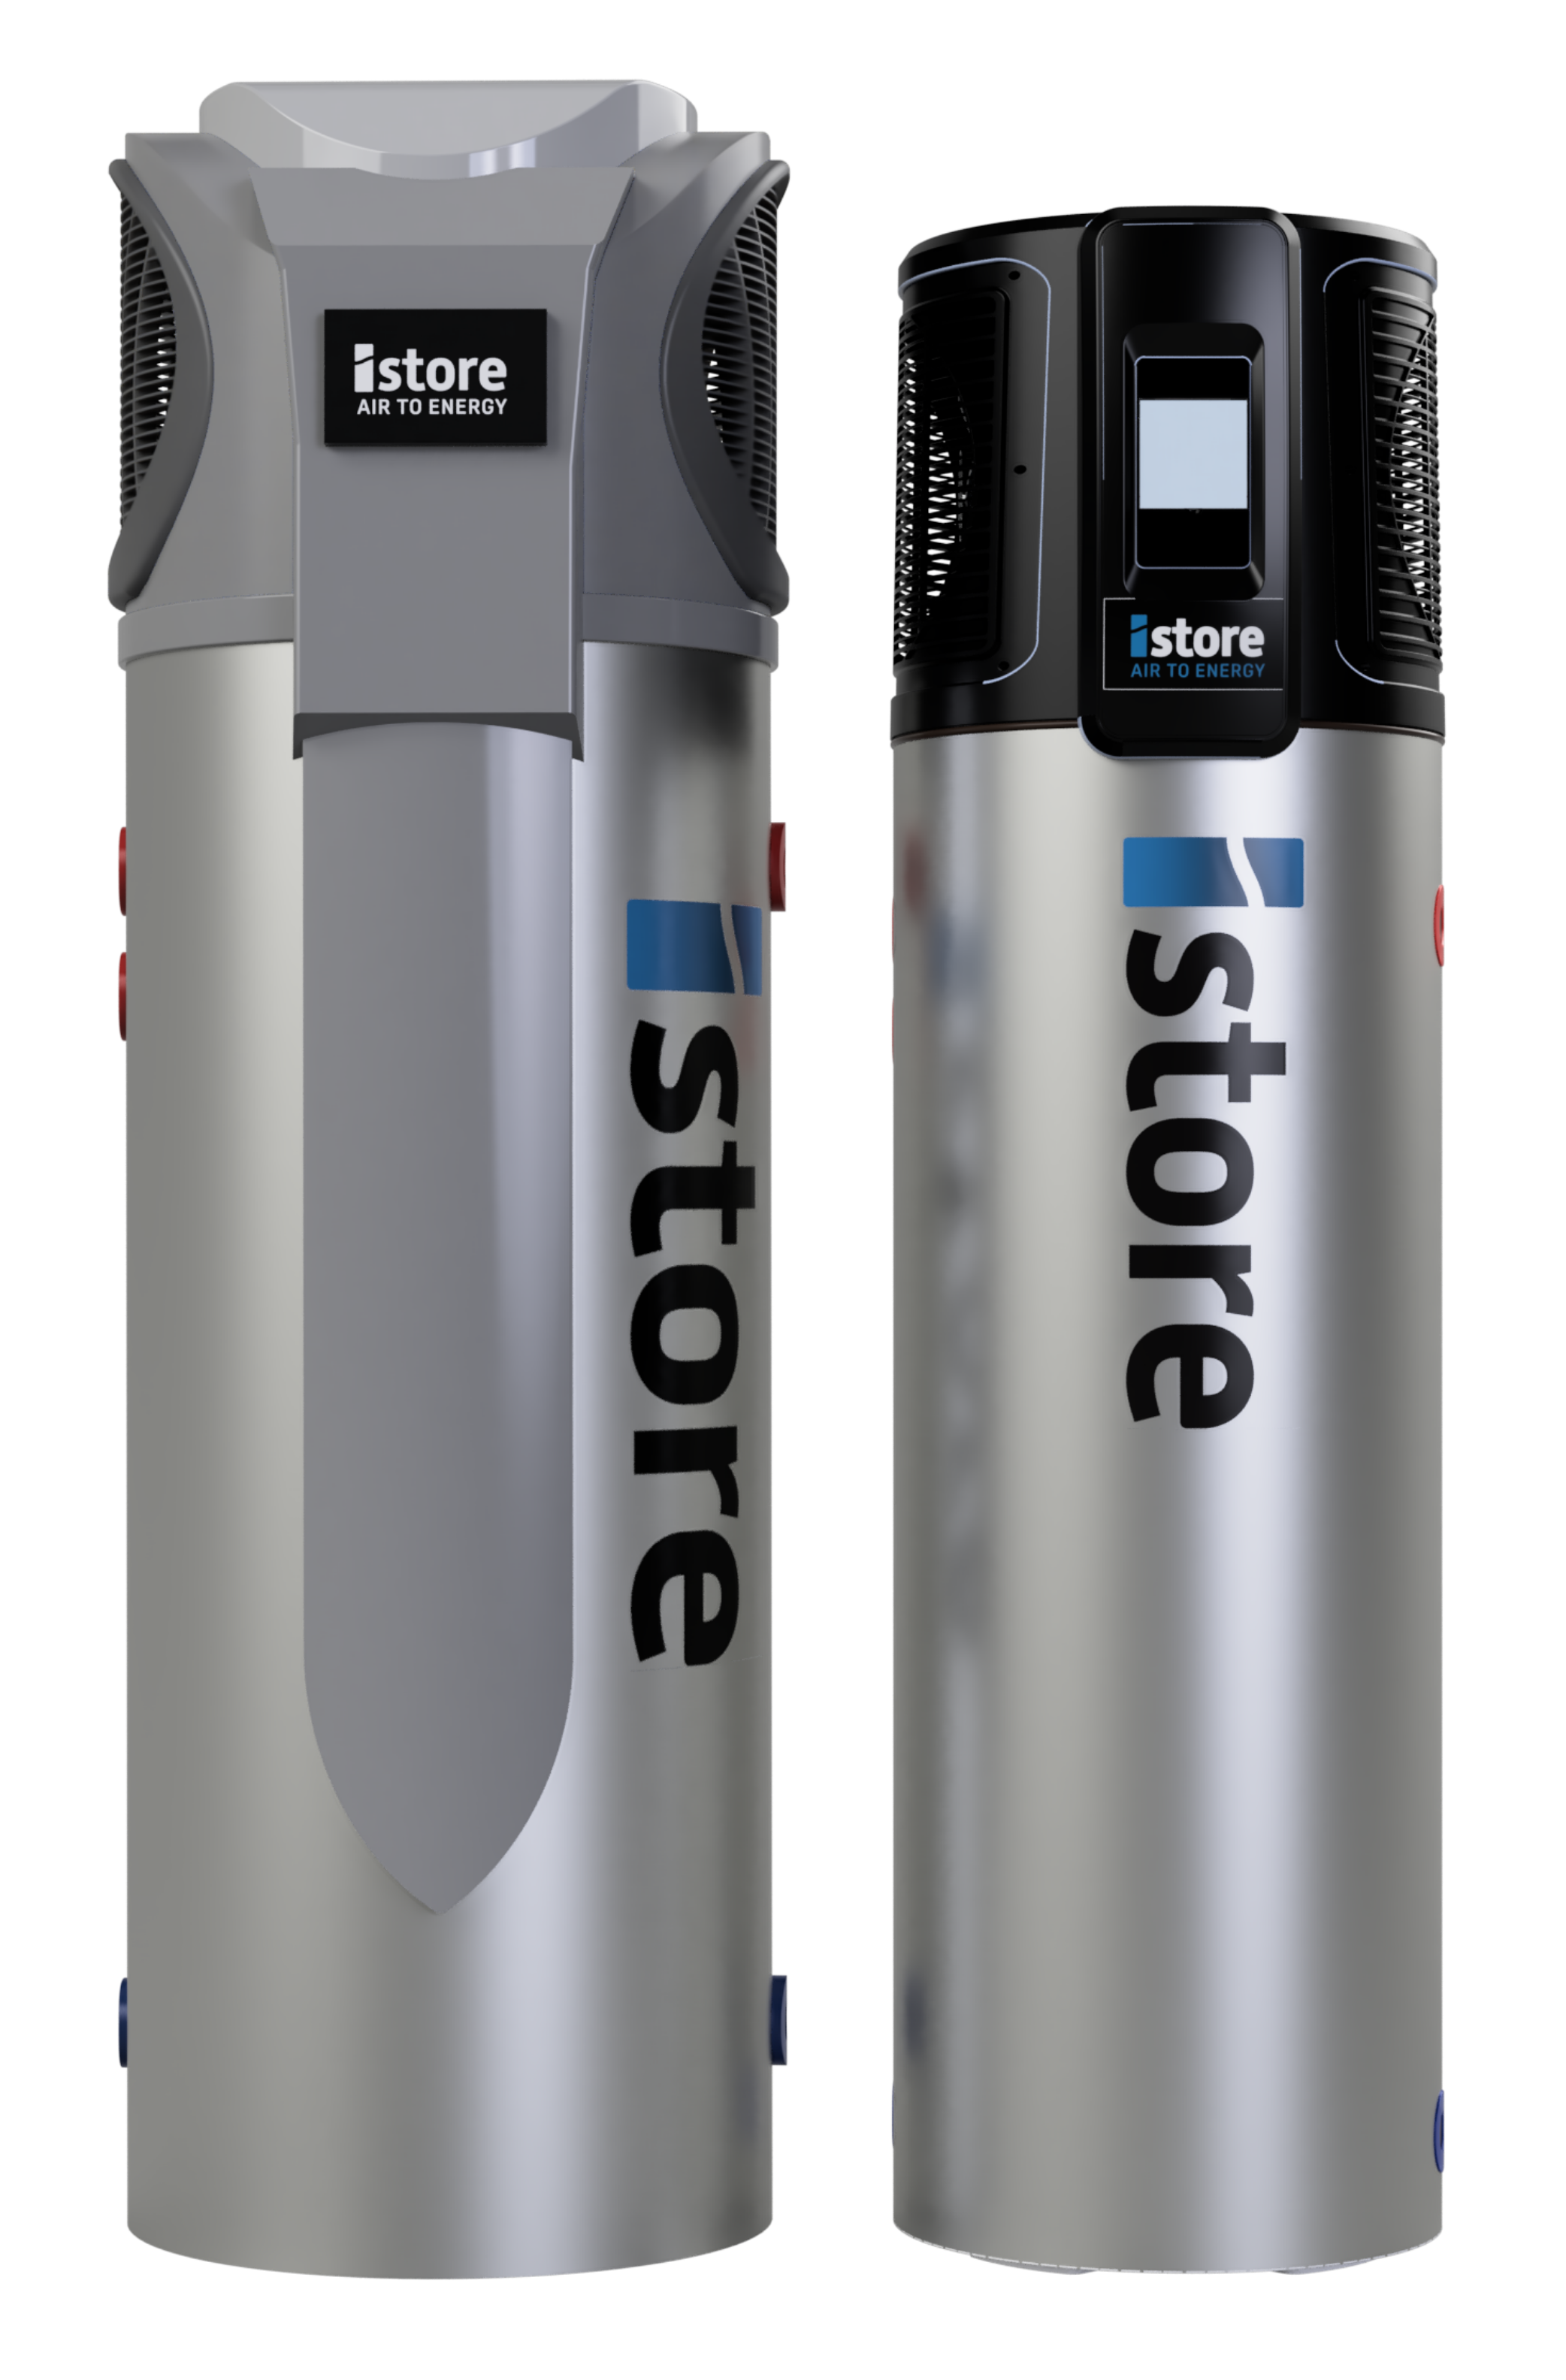 iStore Air to Energy | Solar Hot Water Systems - Solargain